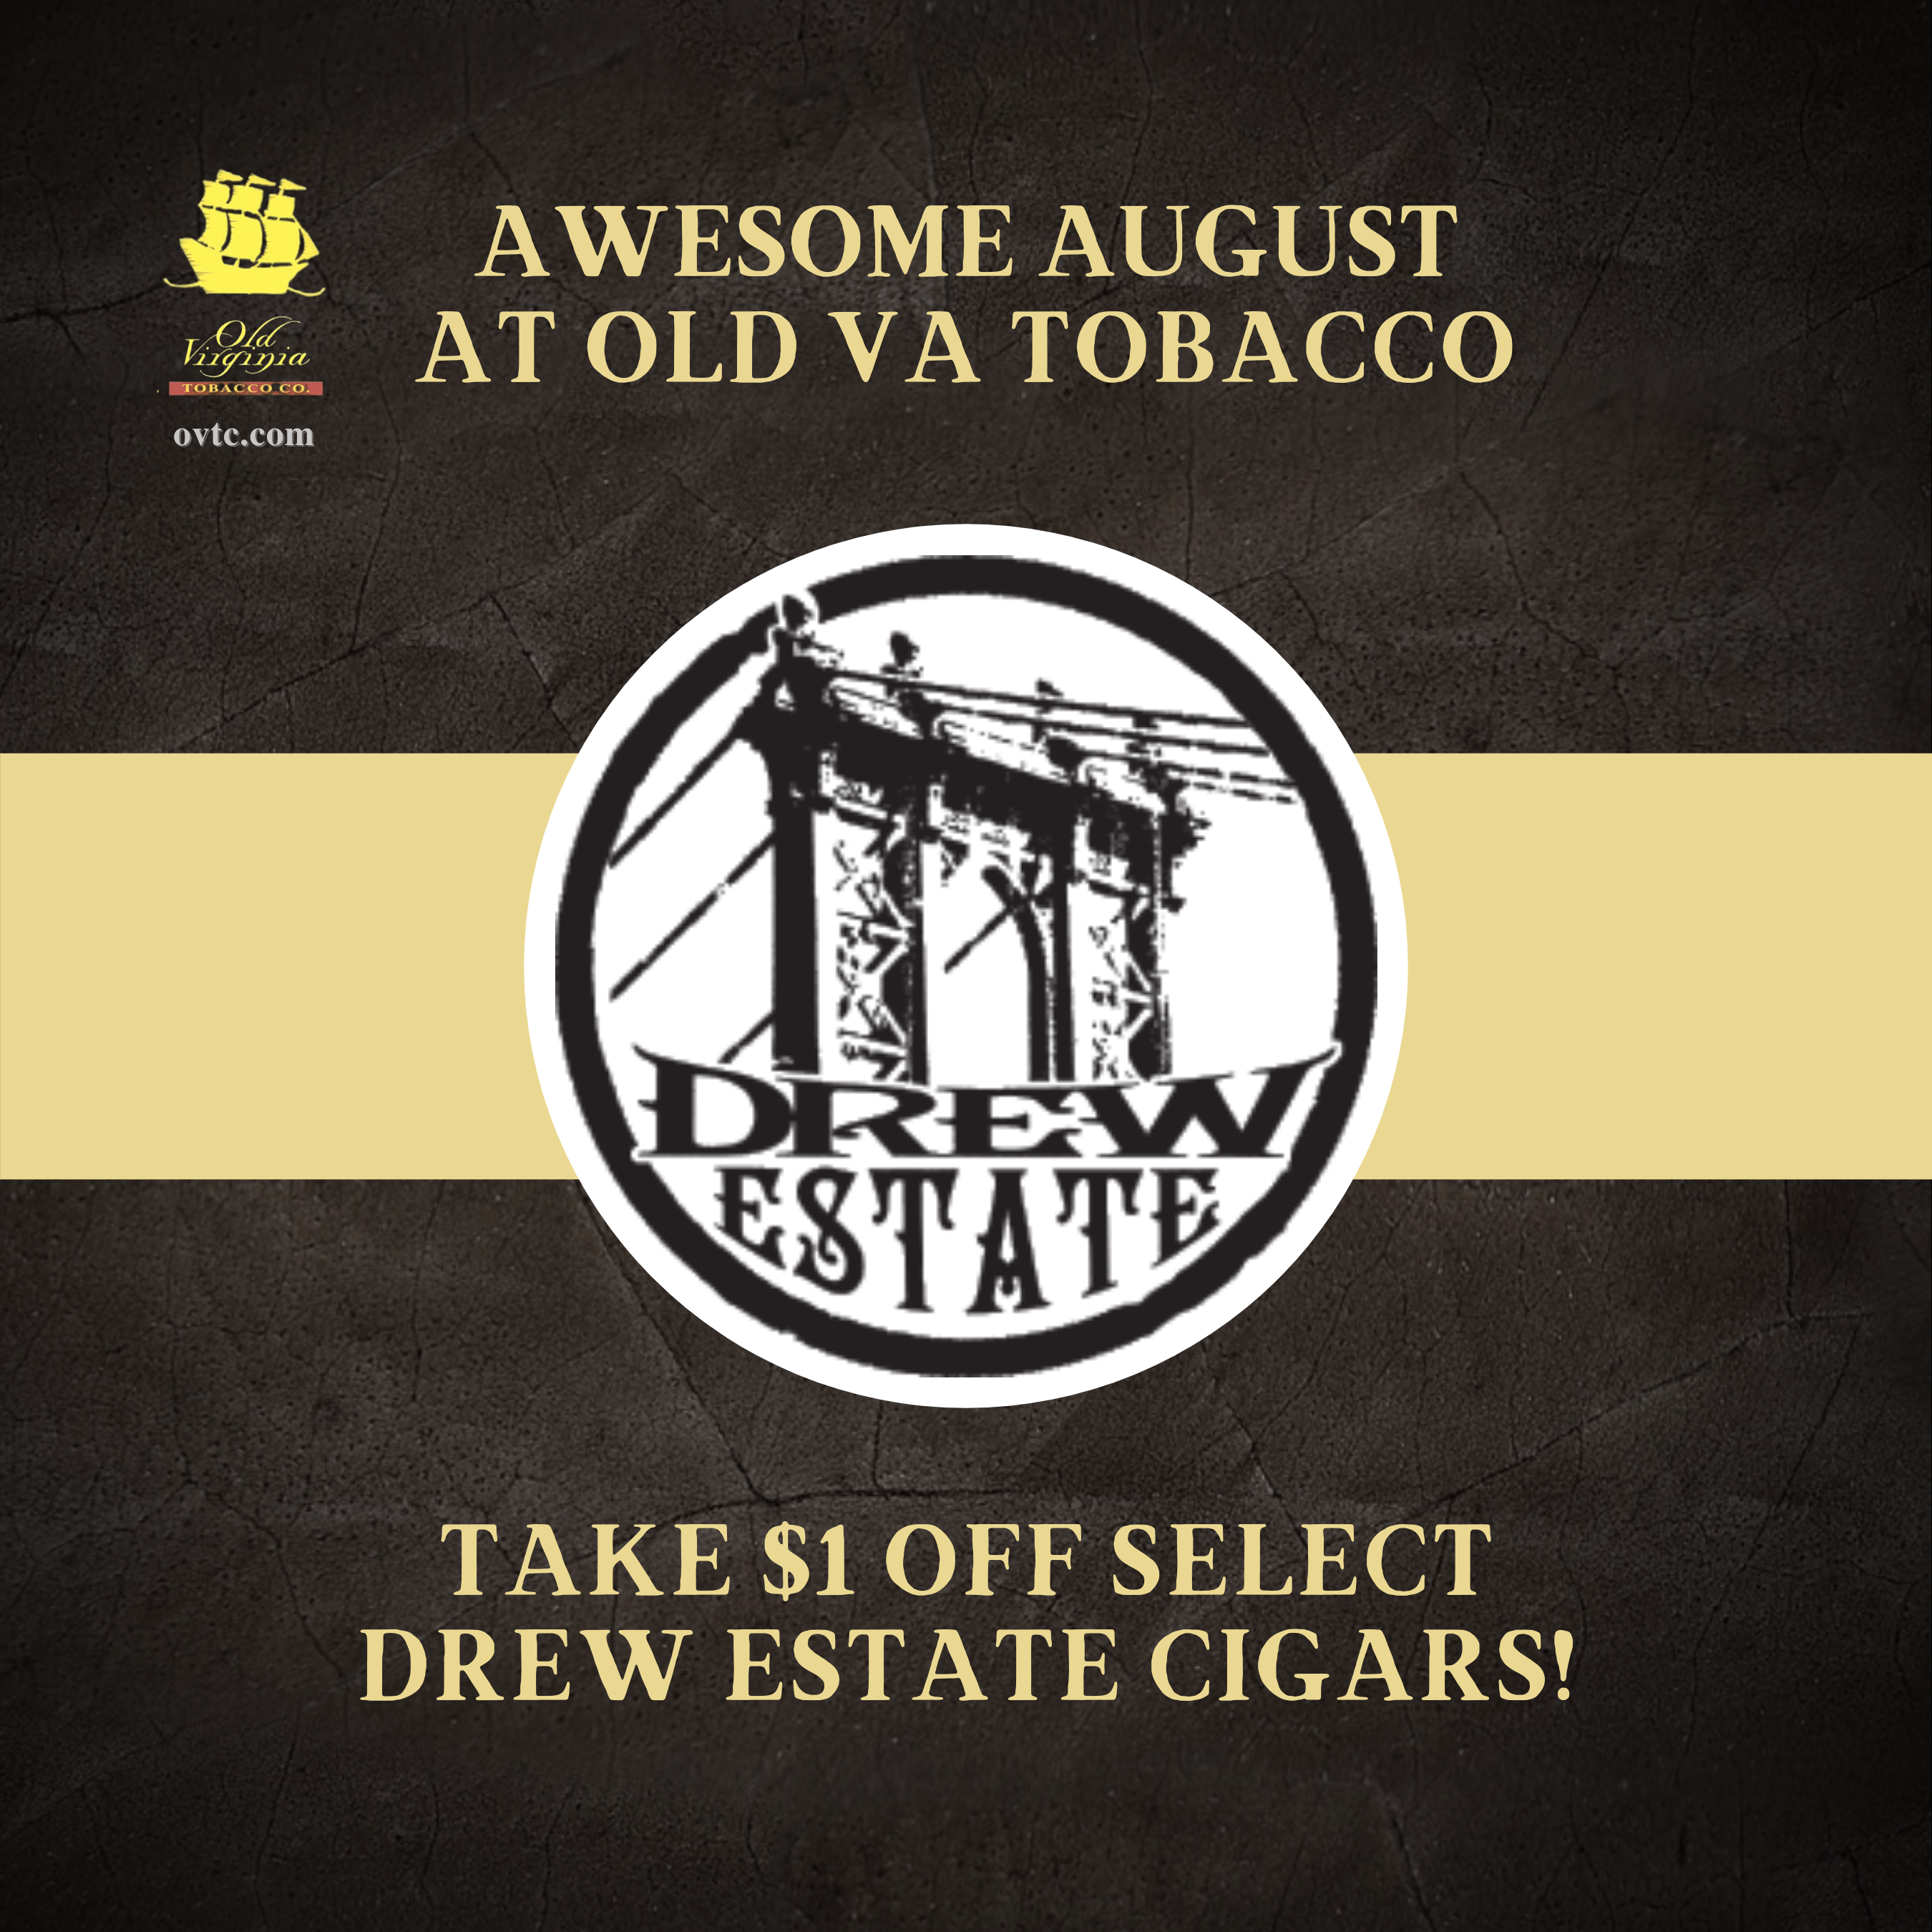 Awesome August! $1 off Drew Estate Cigars